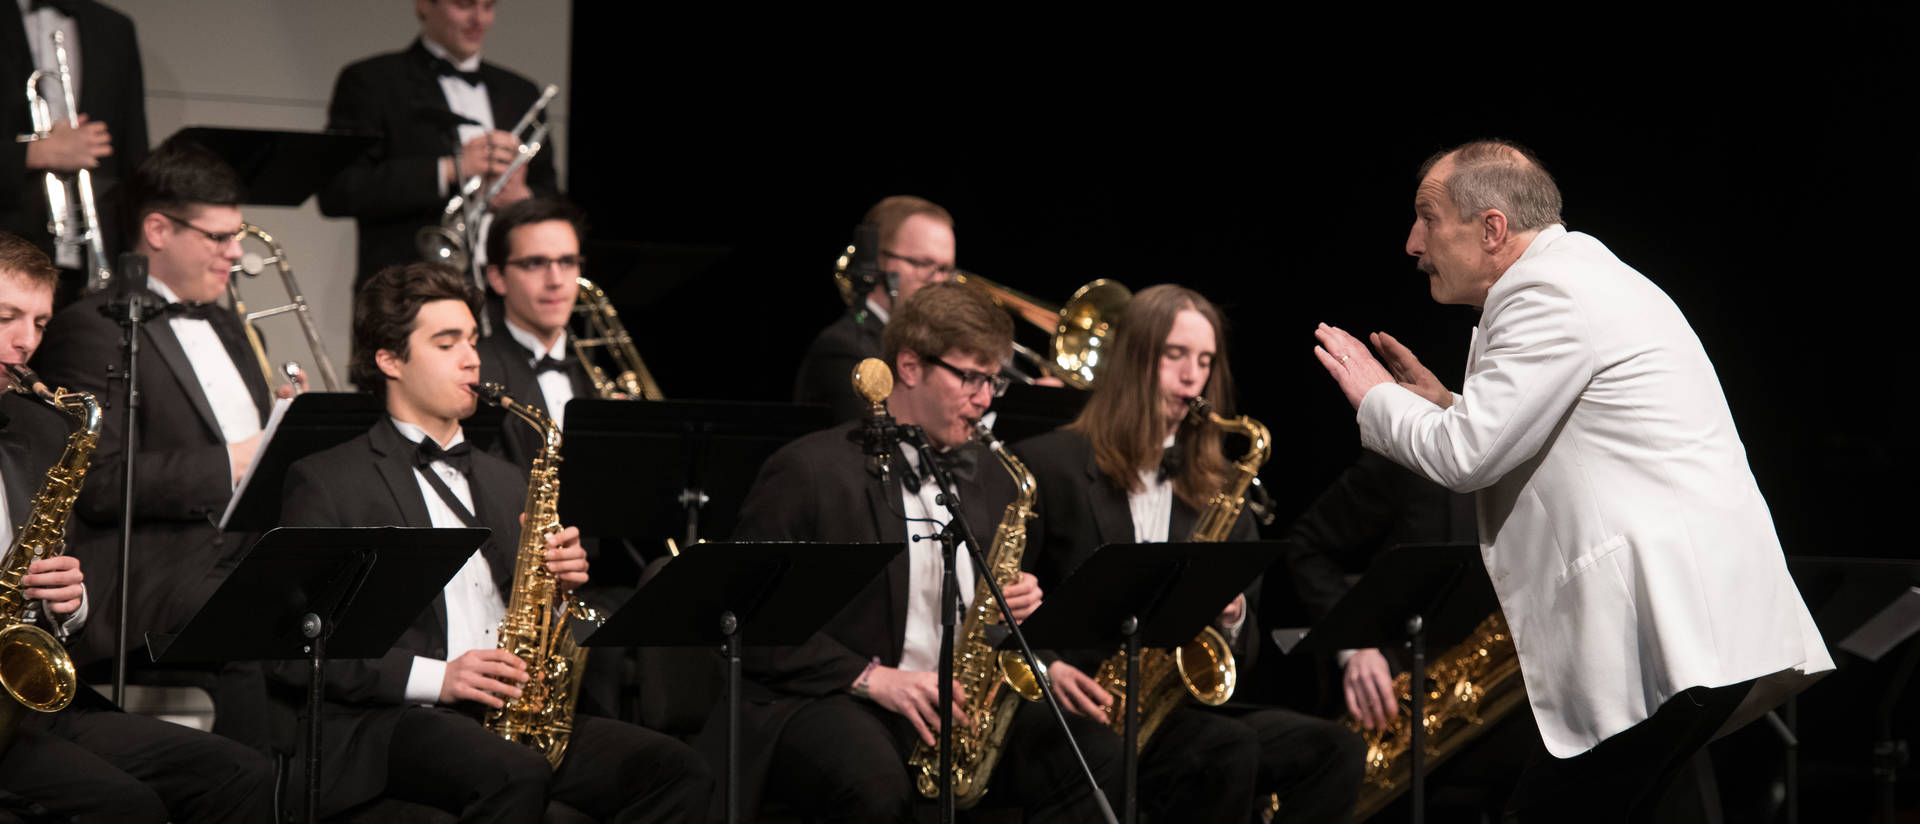 Bob Baca directing Jazz students on stage at Eau Claire Jazz Festival